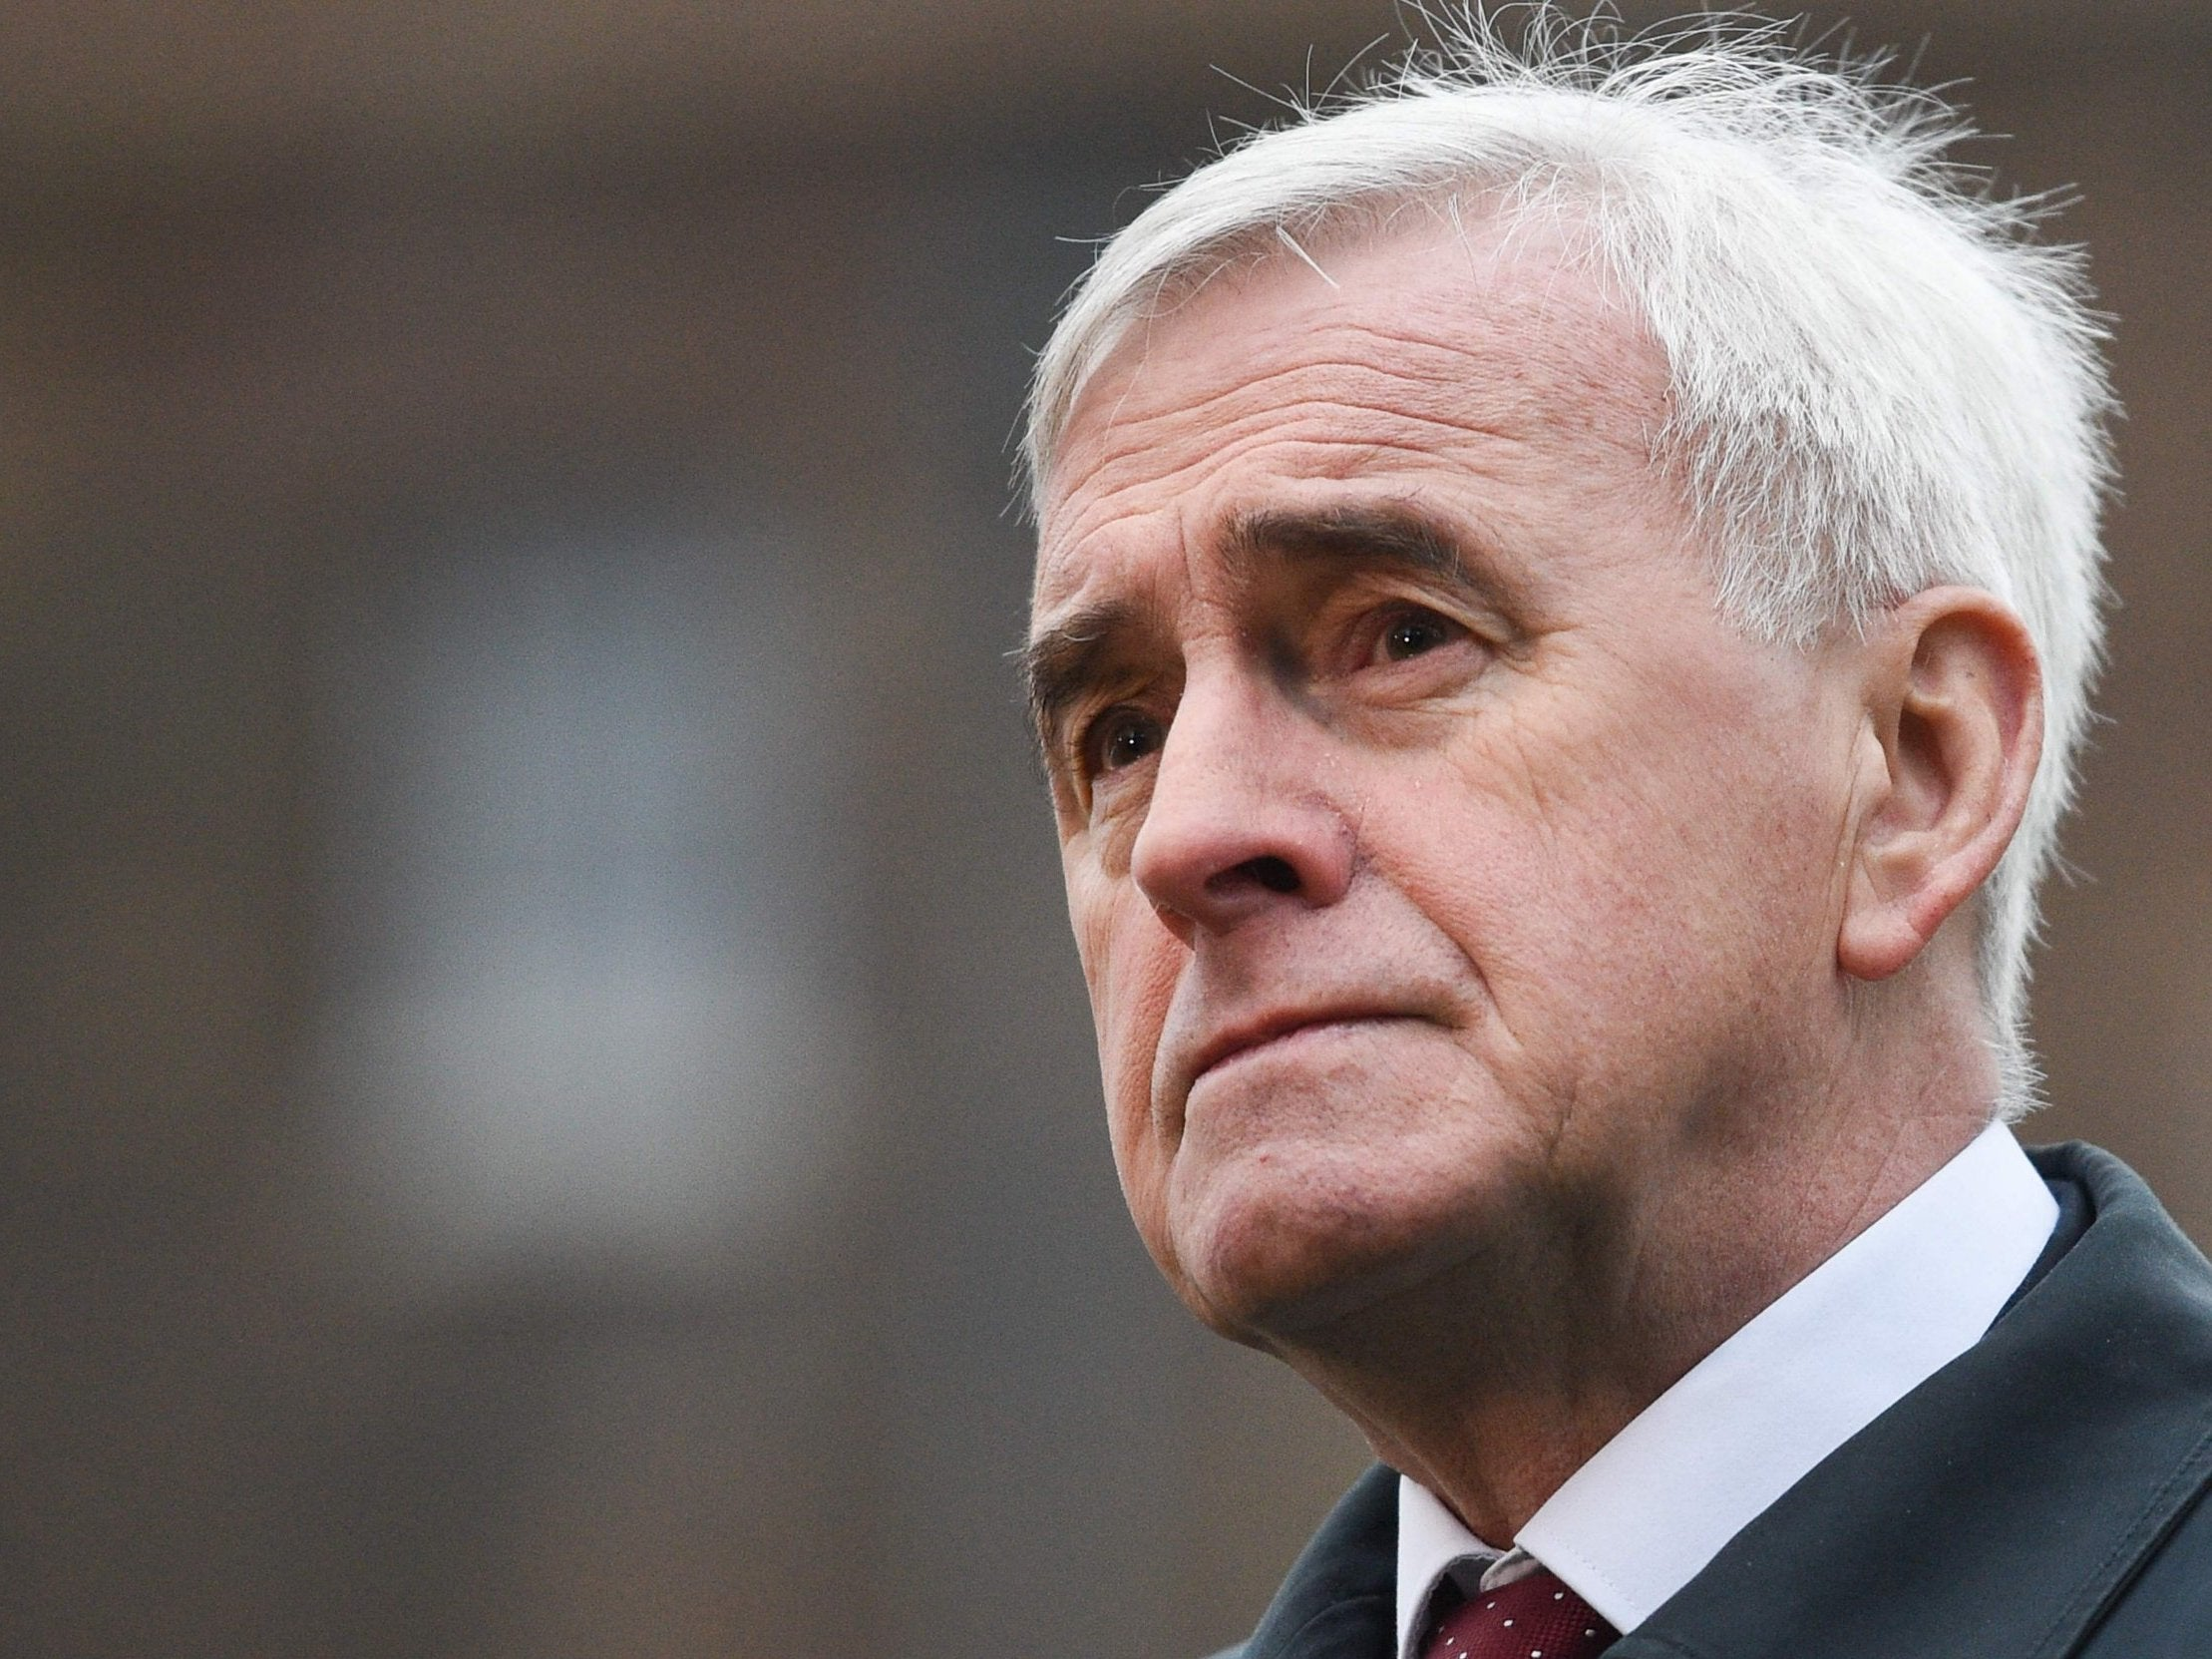 Labour will trial universal basic income if it wins general election, John McDonnell says